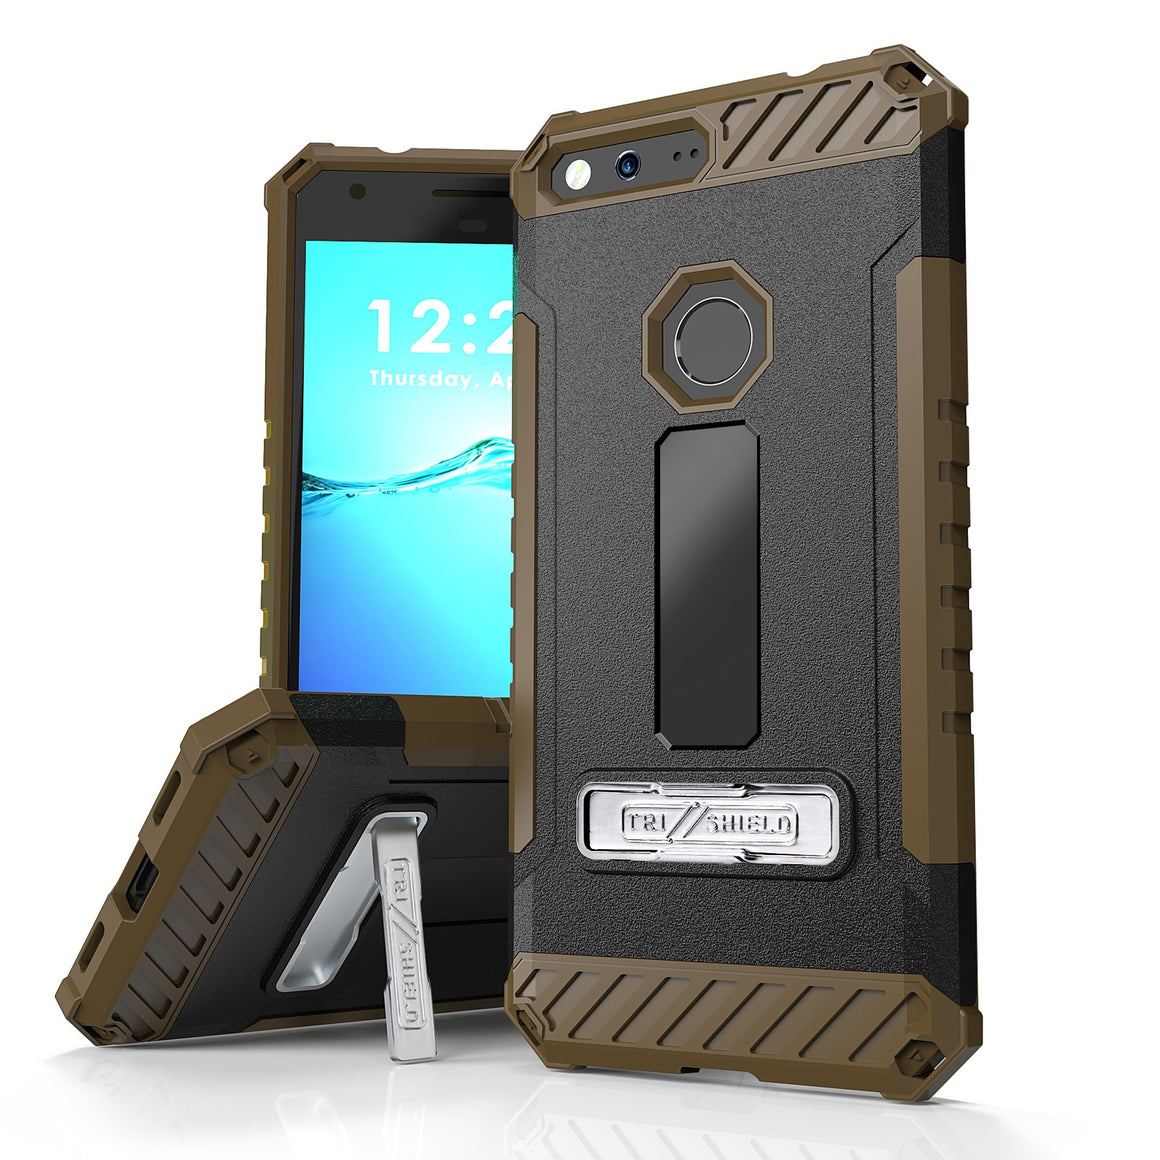 Tri Shield For Google Pixel XL 5.5 (Verizon) Black/Tan, TPU Case,Kickstand,